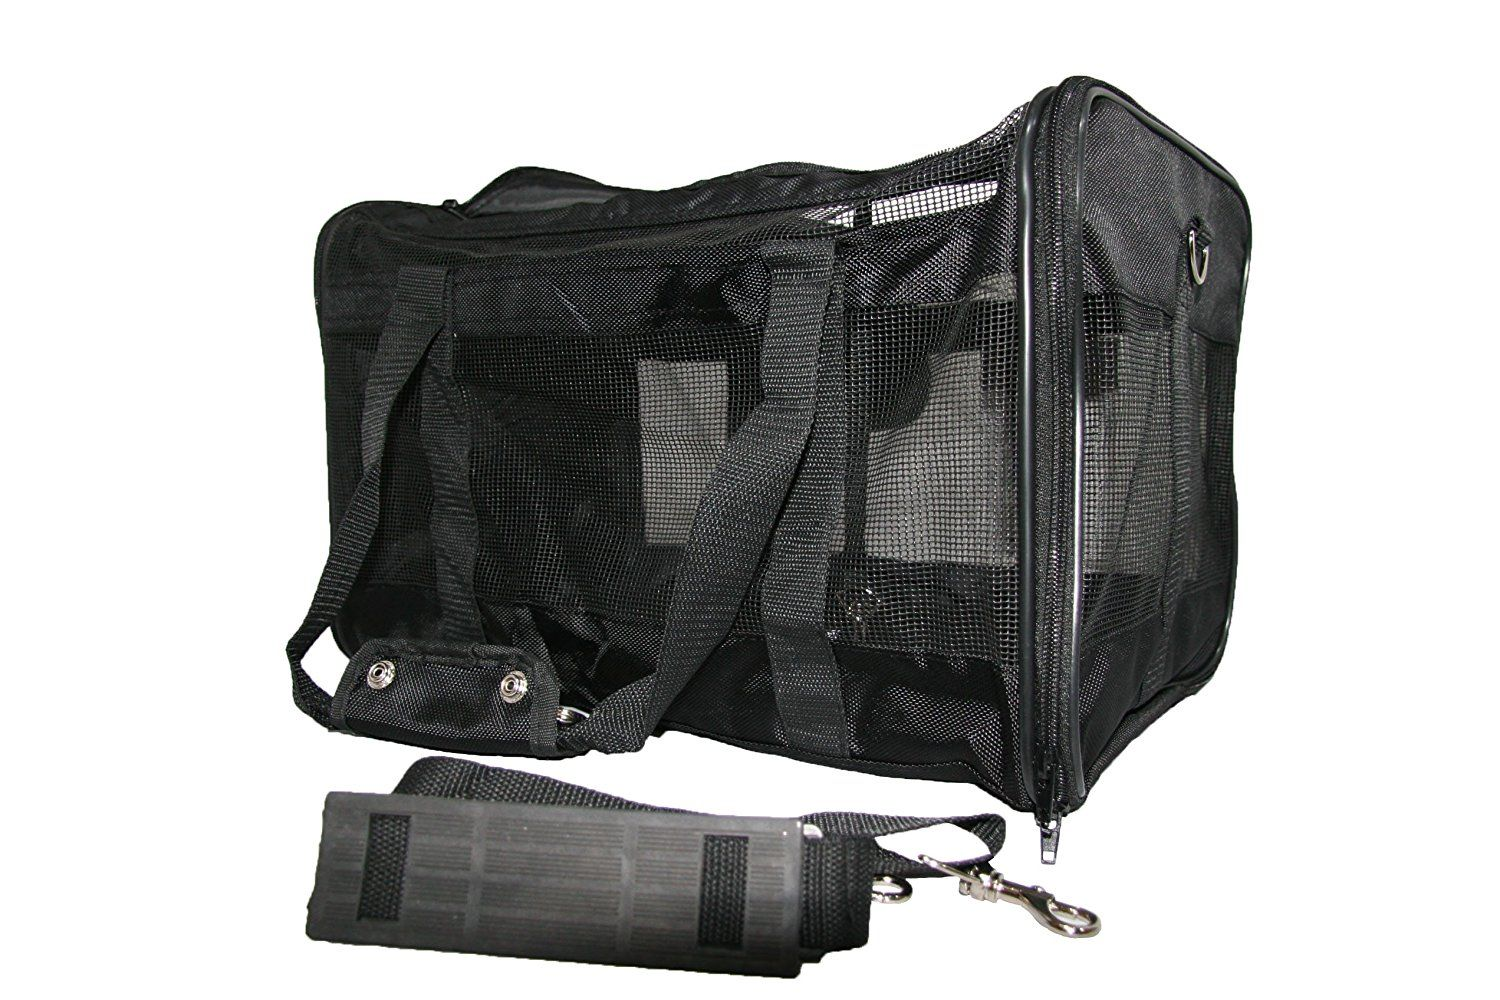 Mr. Peanut's Airline Approved Soft Sided Pet Carrier with